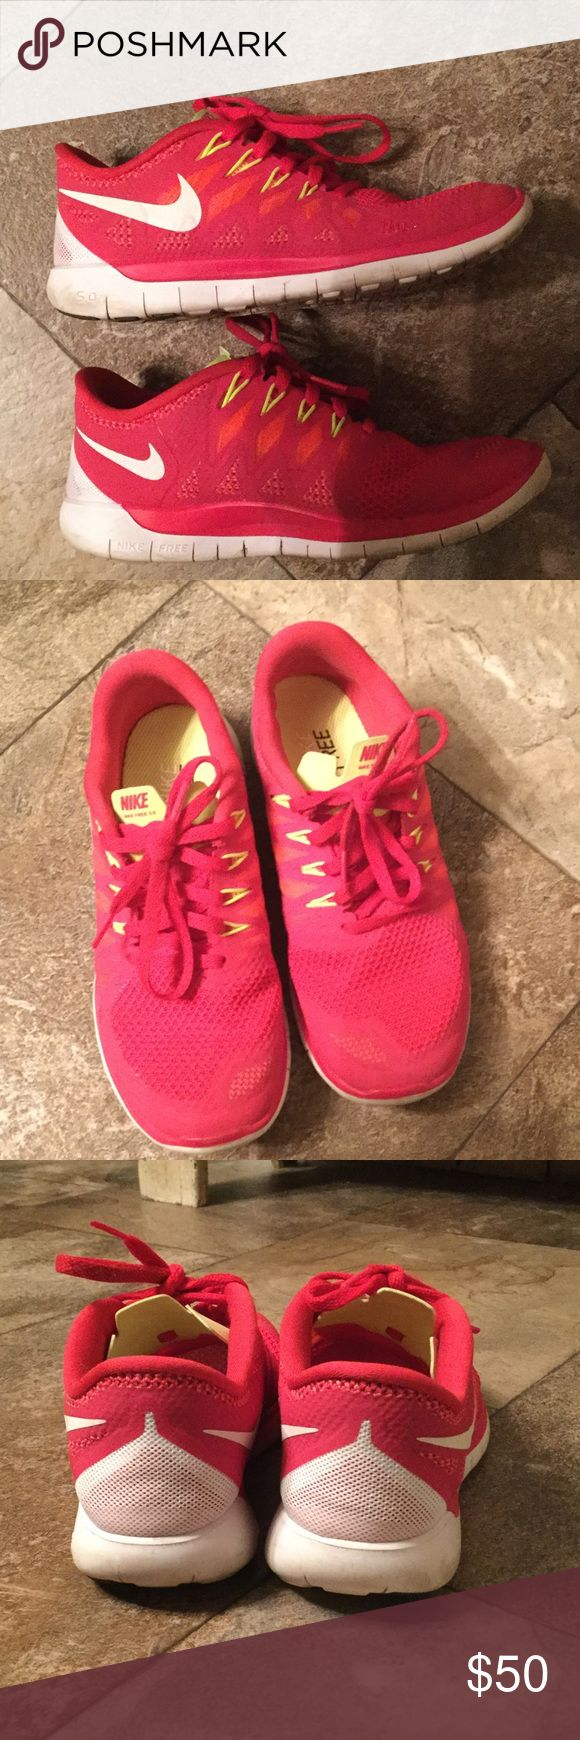 17 best ideas about red nike shoes on pinterest | roshe run